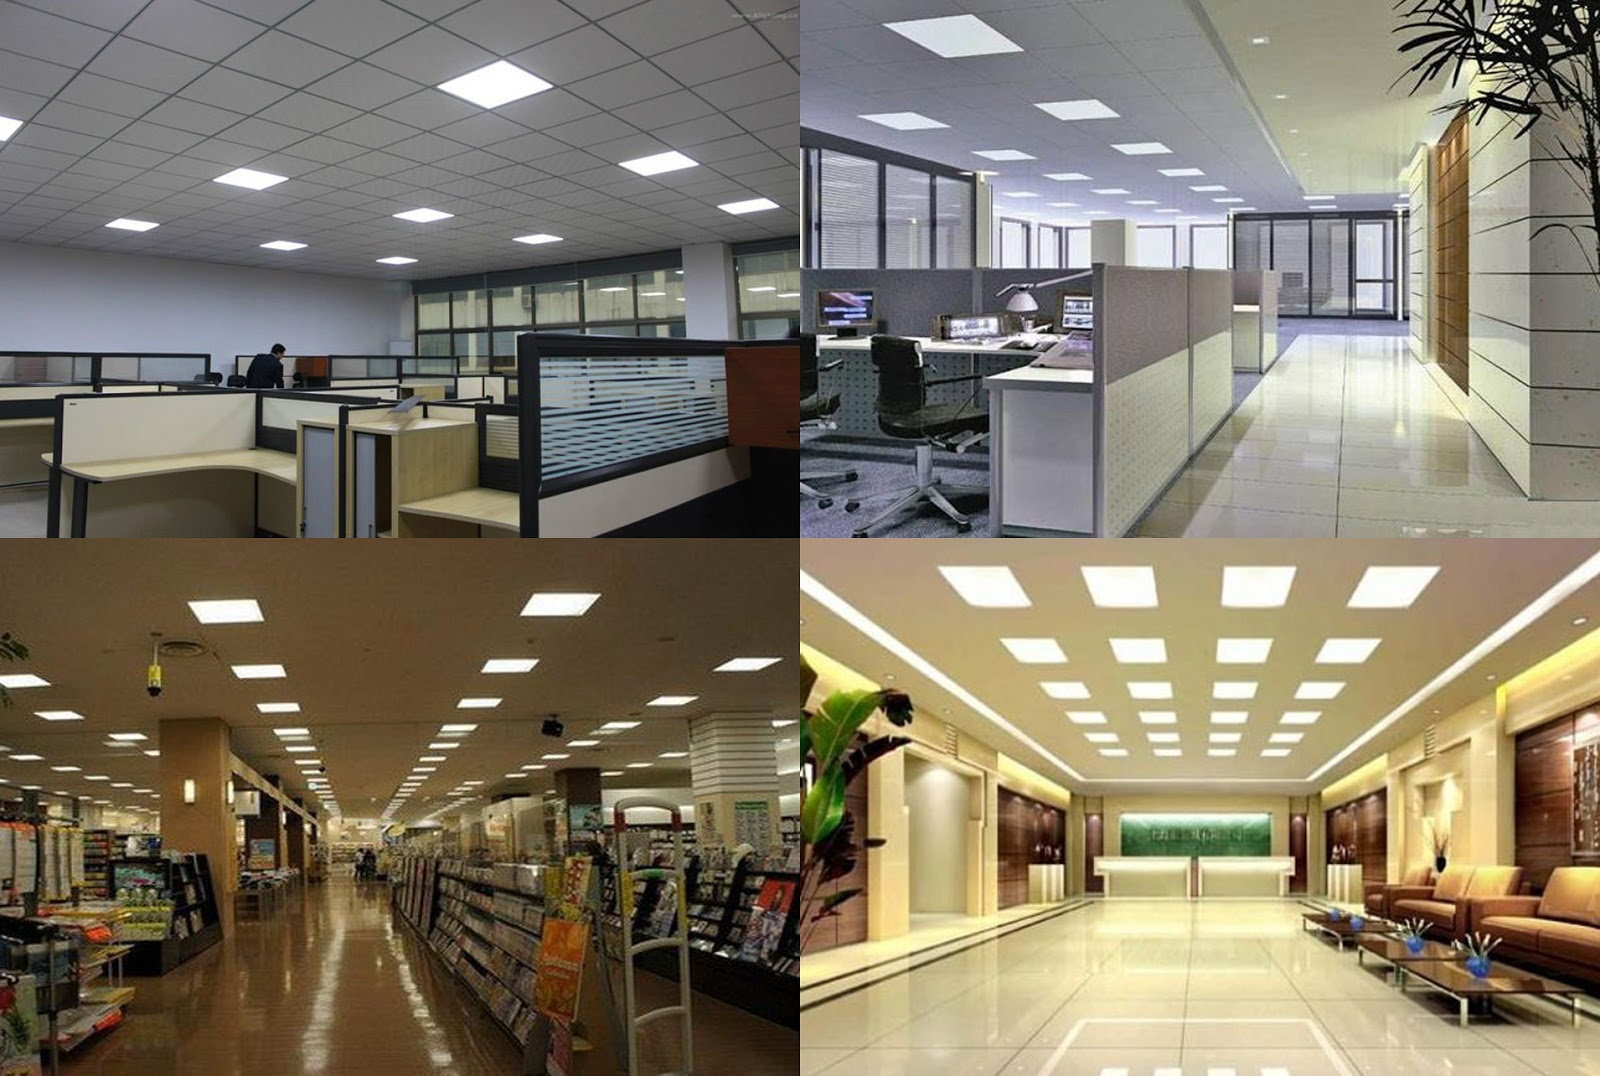 How green is is led lighting guardian services plus qualified led lighting produces virtually no heat and provides optimal light color for any environment from parking lots to high end show rooms aloadofball